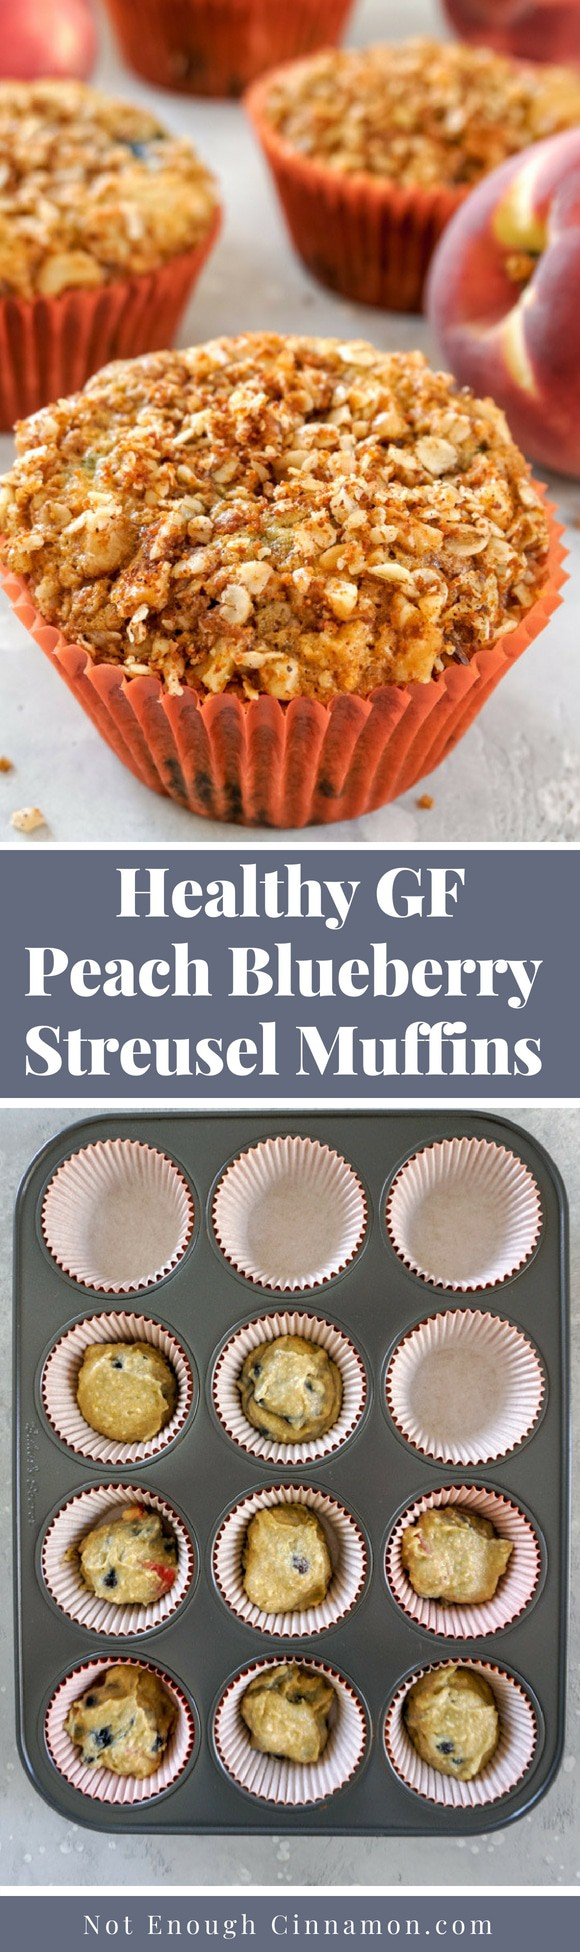 A healthy peach and blueberry muffins recipe made with oats and almond flour, and sweetened with maple syrup. Gluten free and refined sugar free. Recipe on NotEnoughCinnamon.com